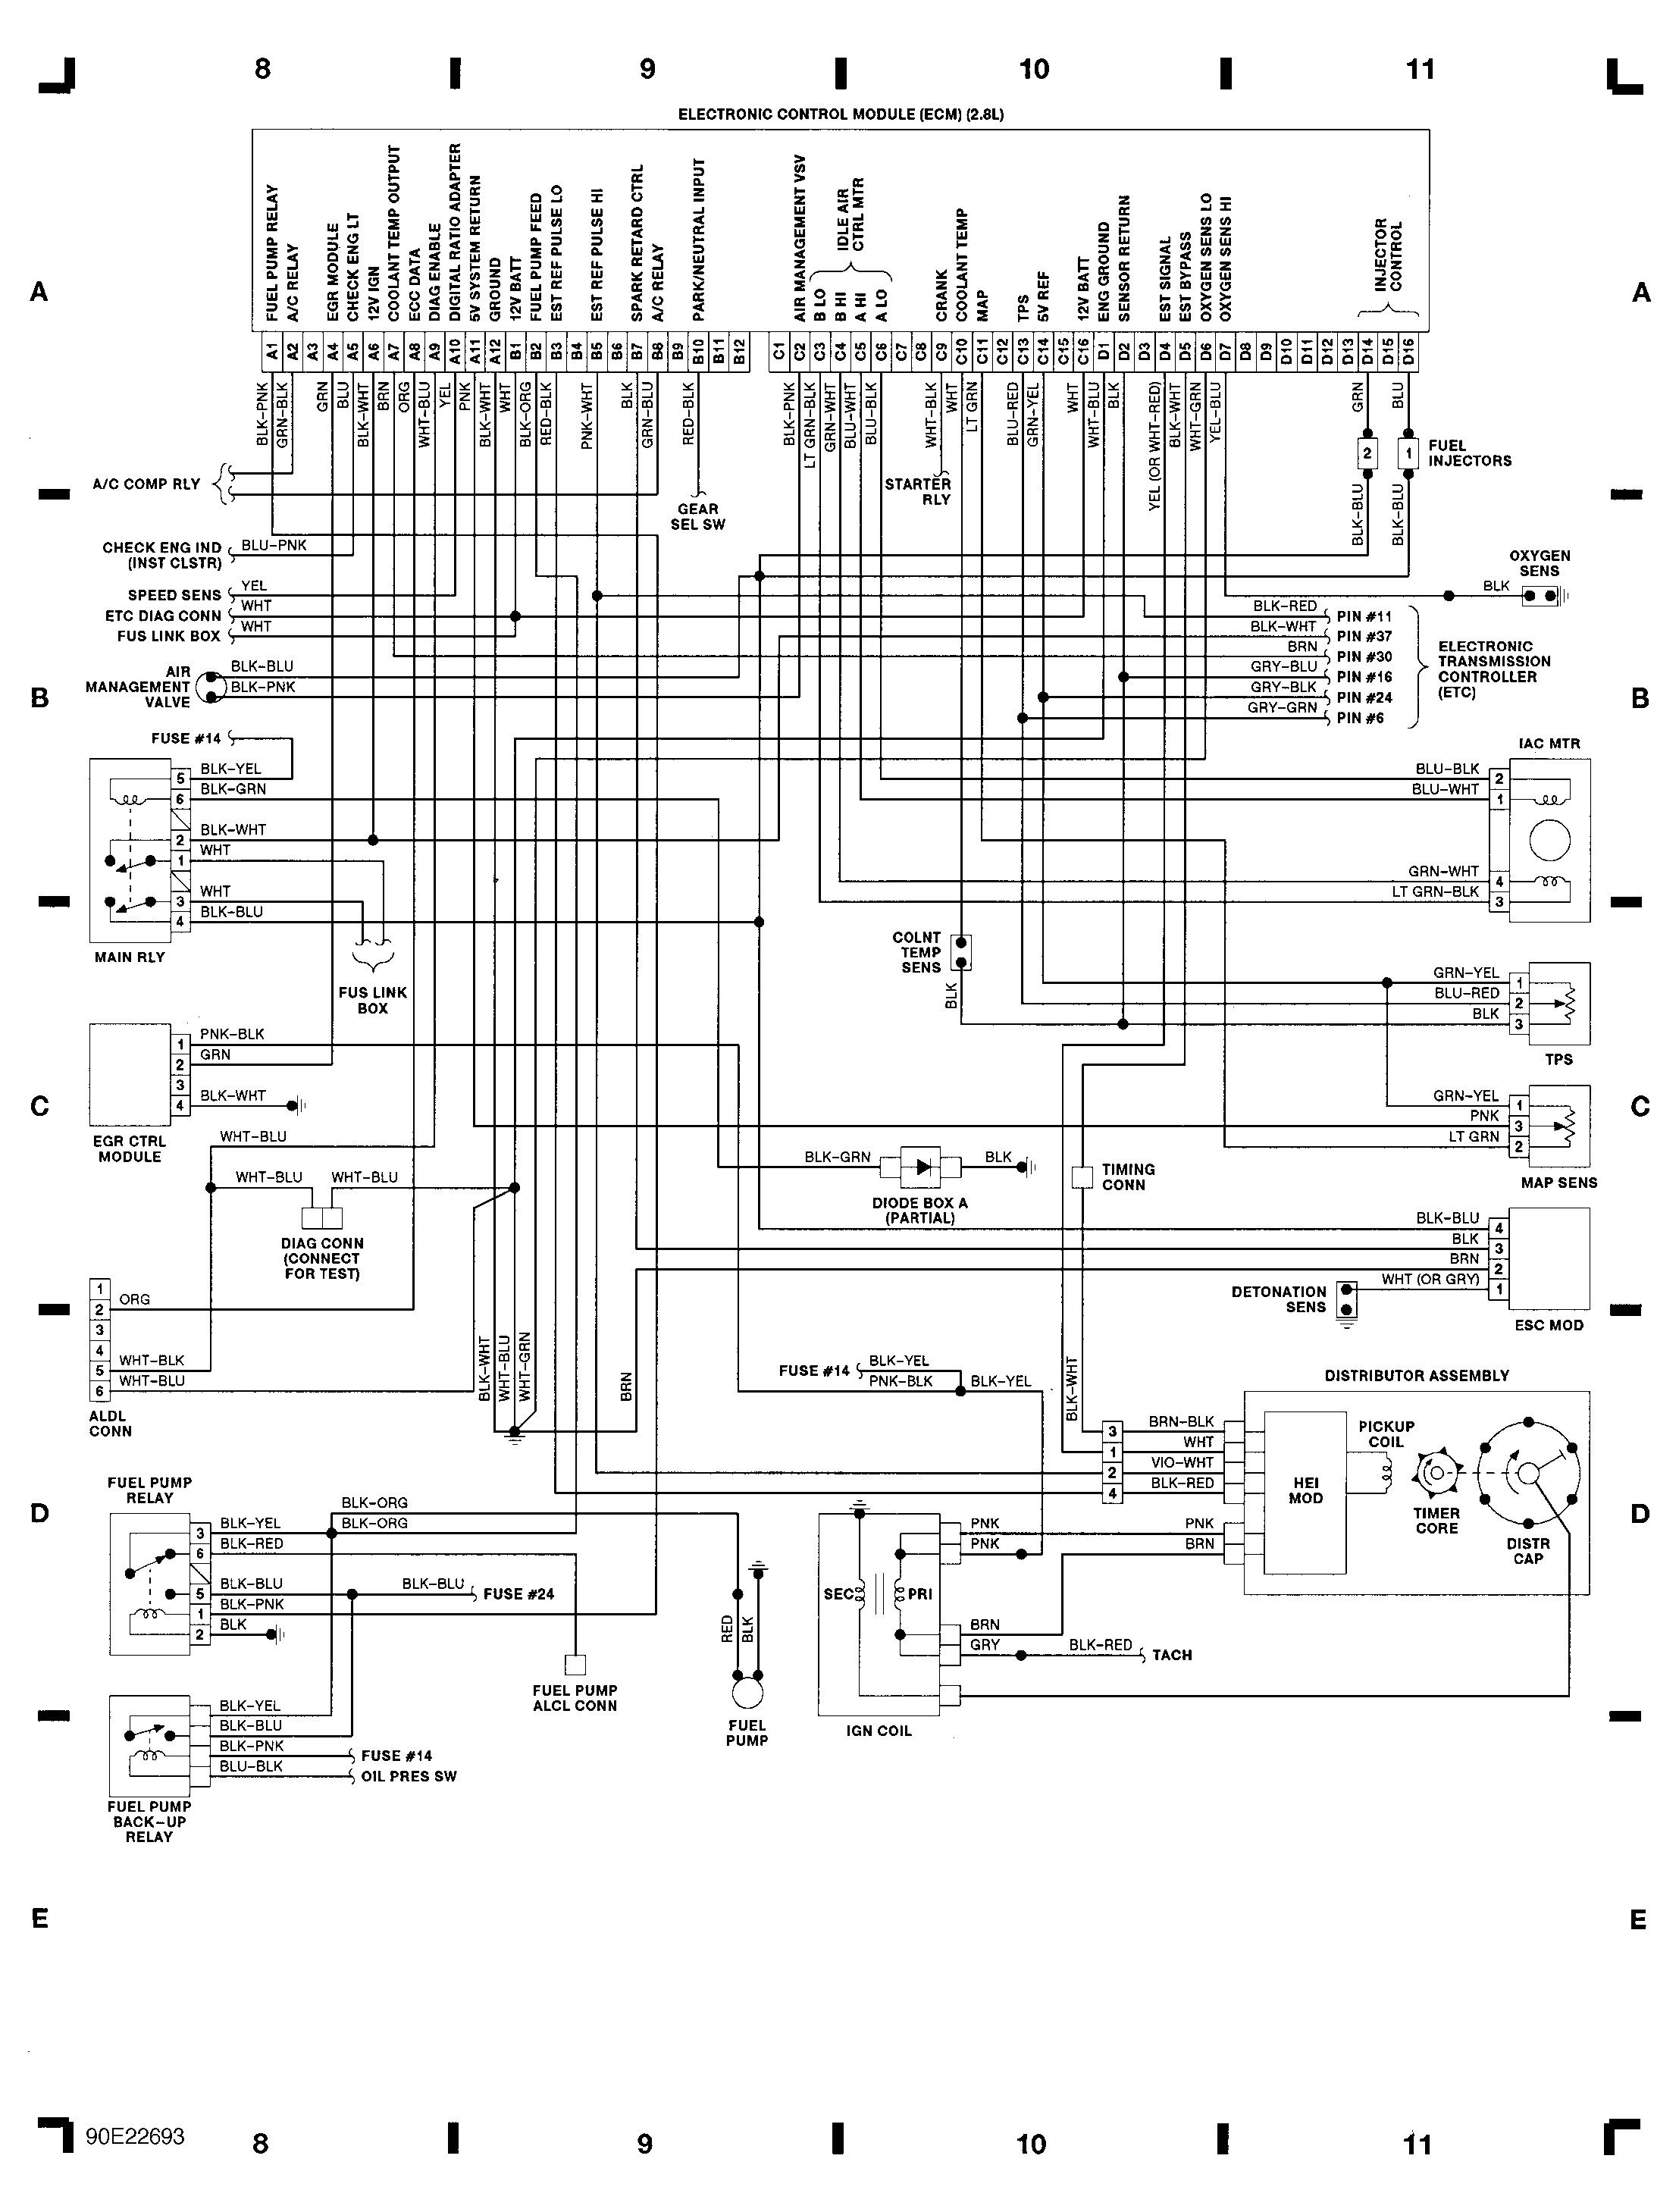 1996 Isuzu Rodeo Engine Diagram In 2020 Diagram Rodeo About Me Blog